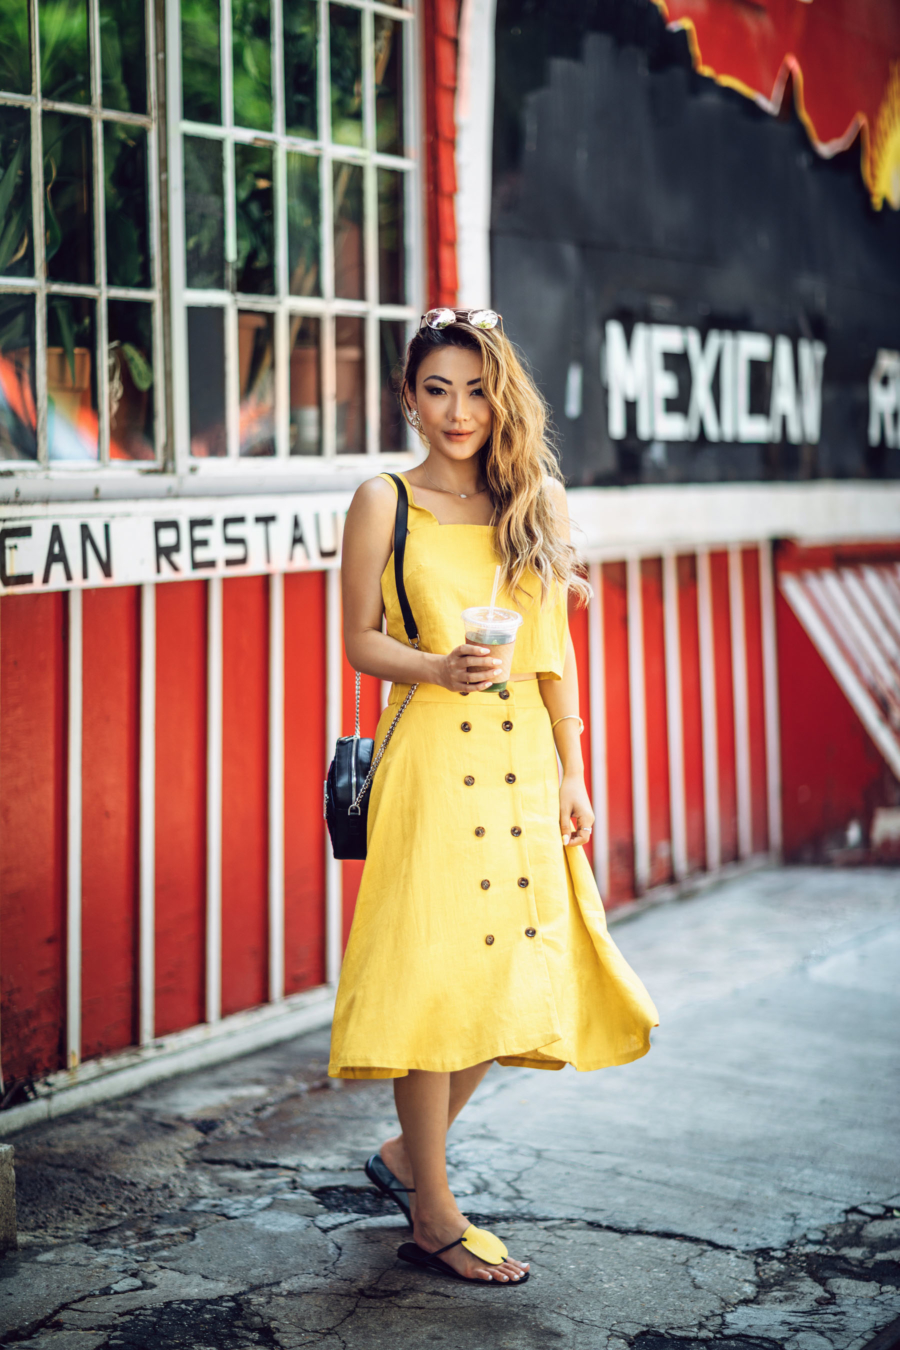 The Best Summer Trends to Buy Now - bright sun dress, yellow sun dress // Notjessfashion.com